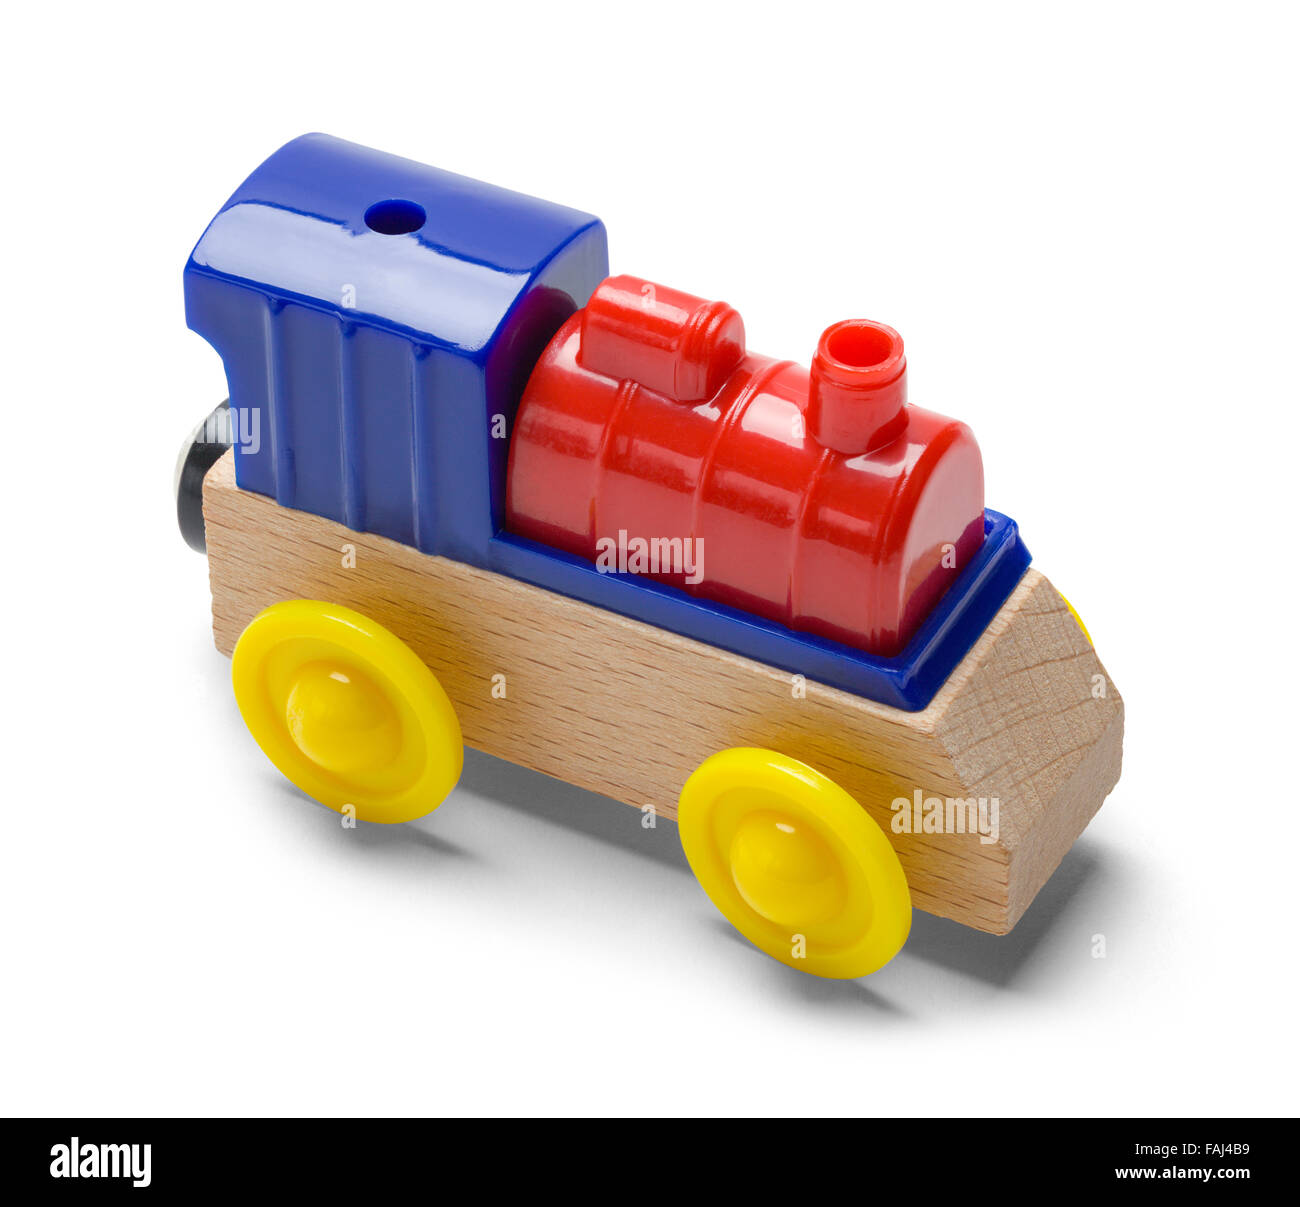 Kids Play Toy Train Engine Isolated on a White Background. - Stock Image